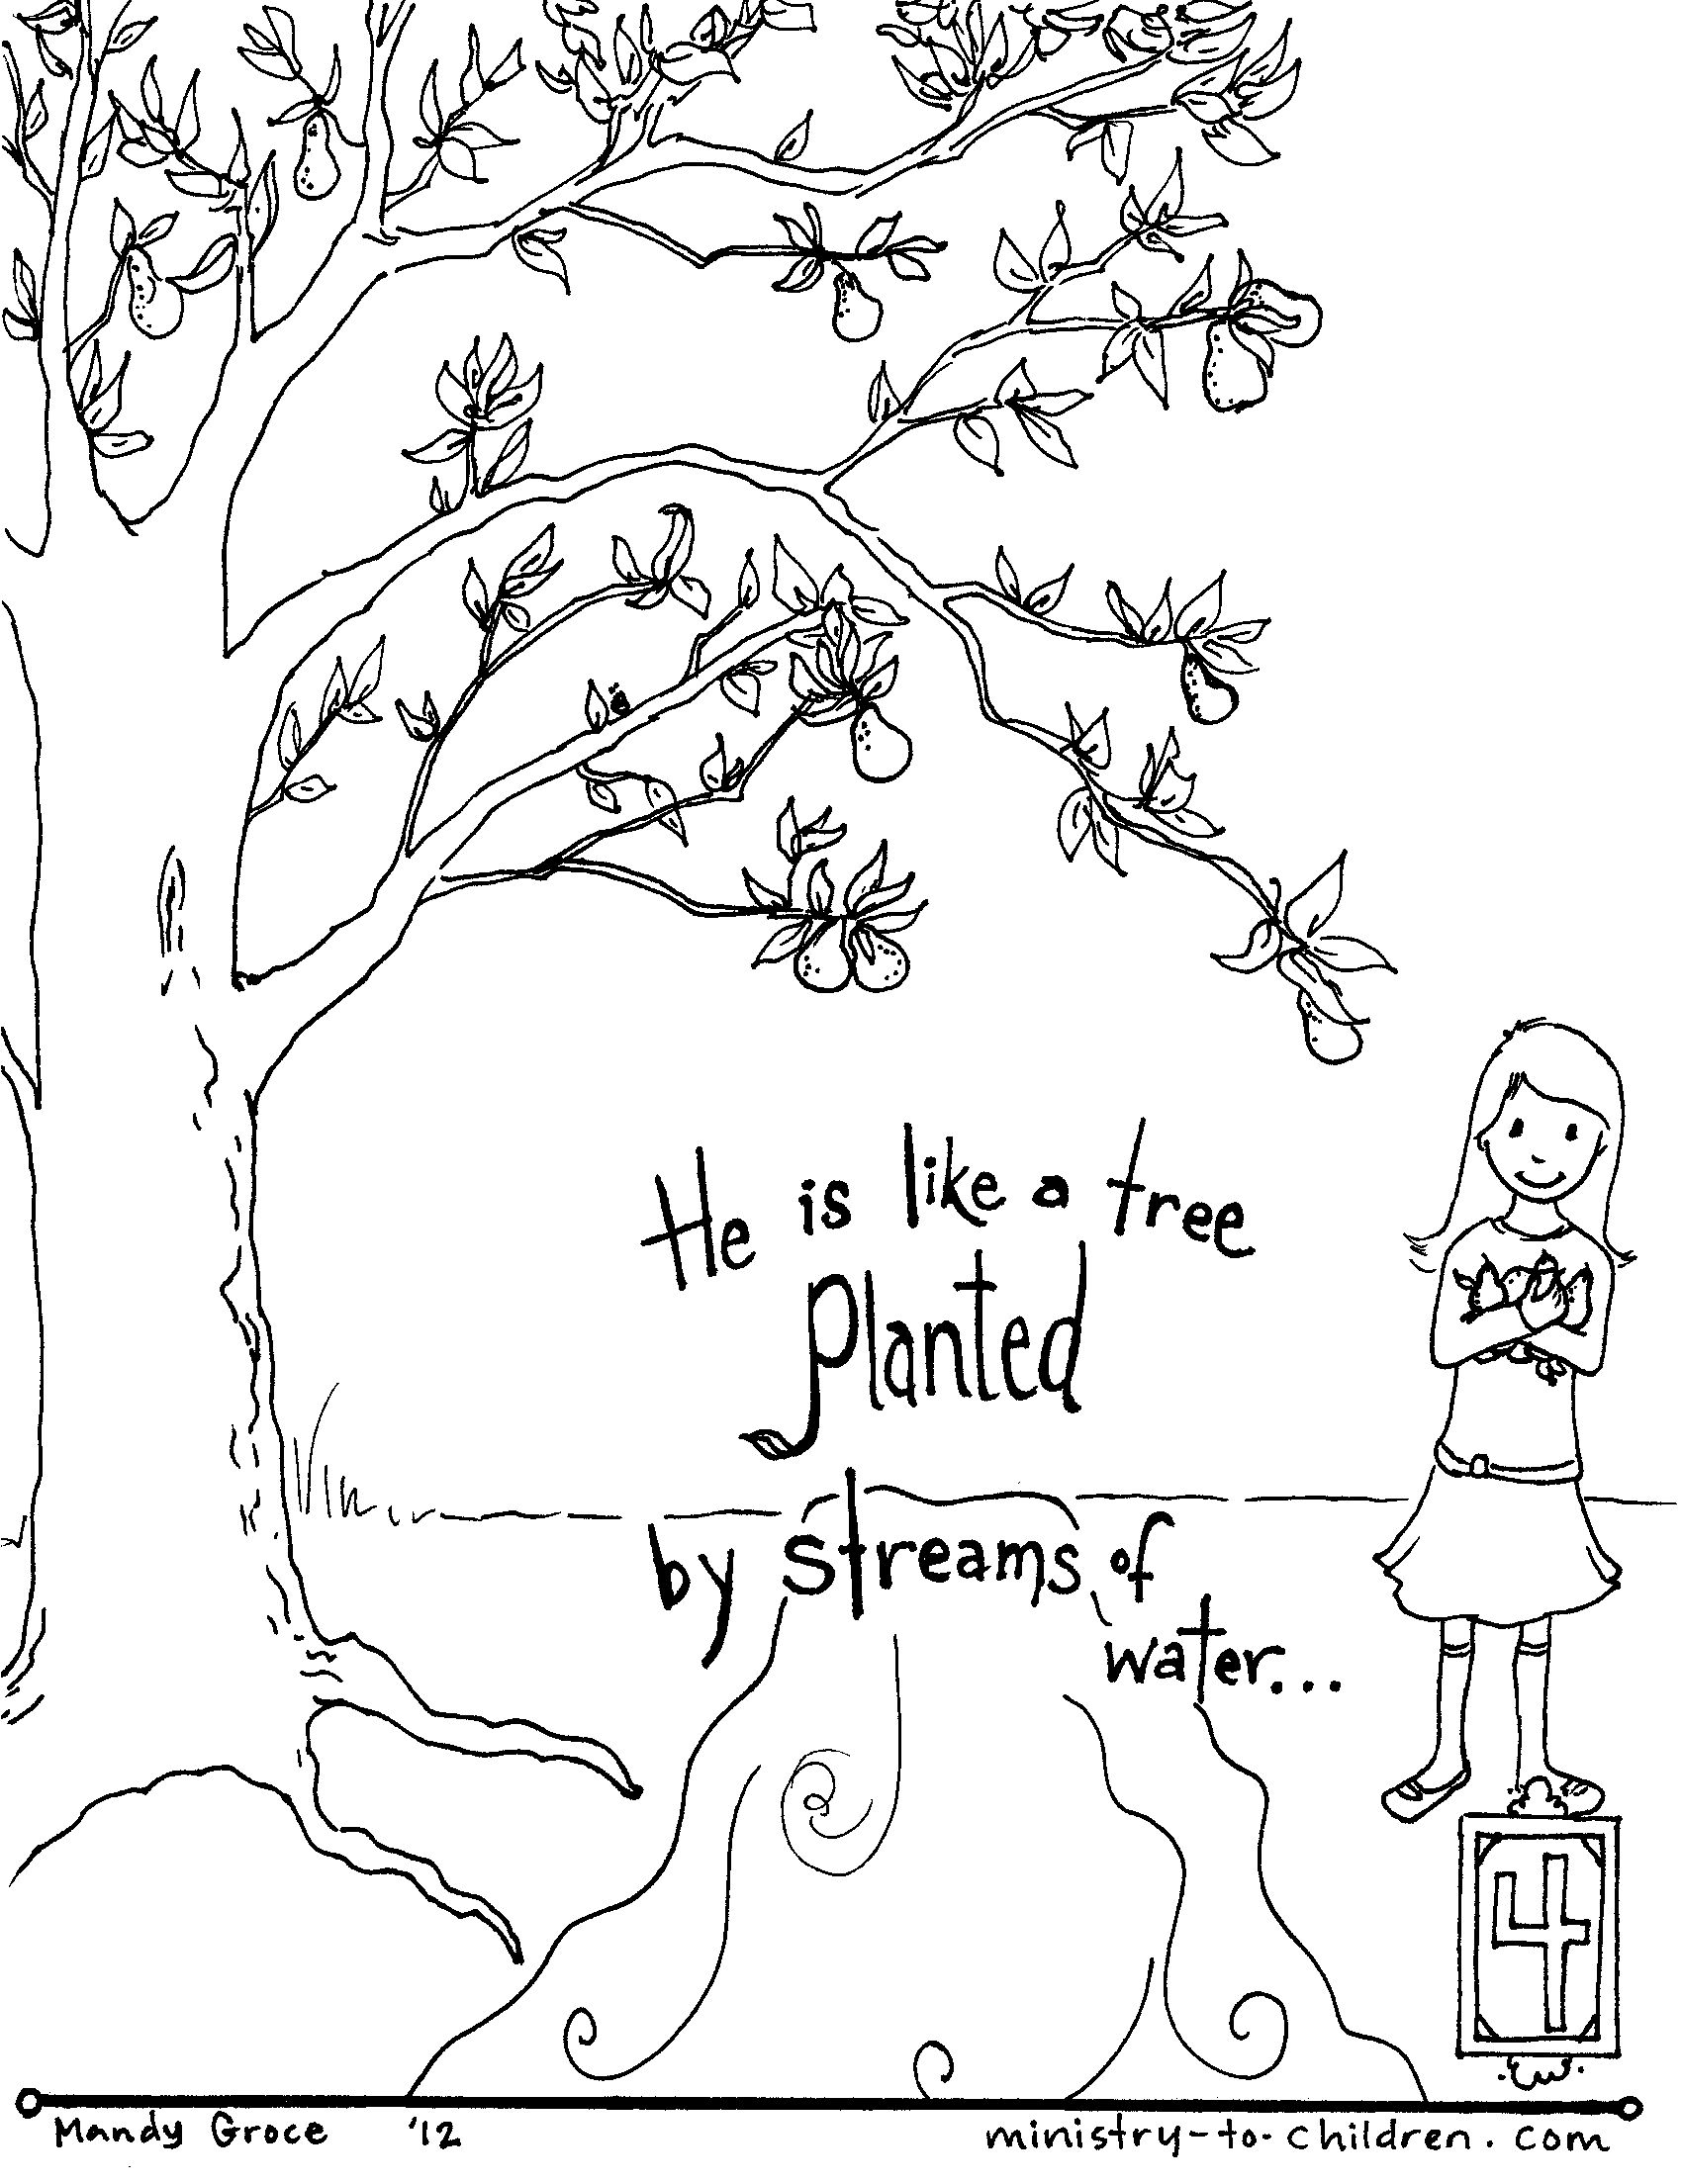 Free printable coloring pages for kids bible - Bible Coloring Pages By Verse Psalm 1 Free Coloring Pages Bible Verses